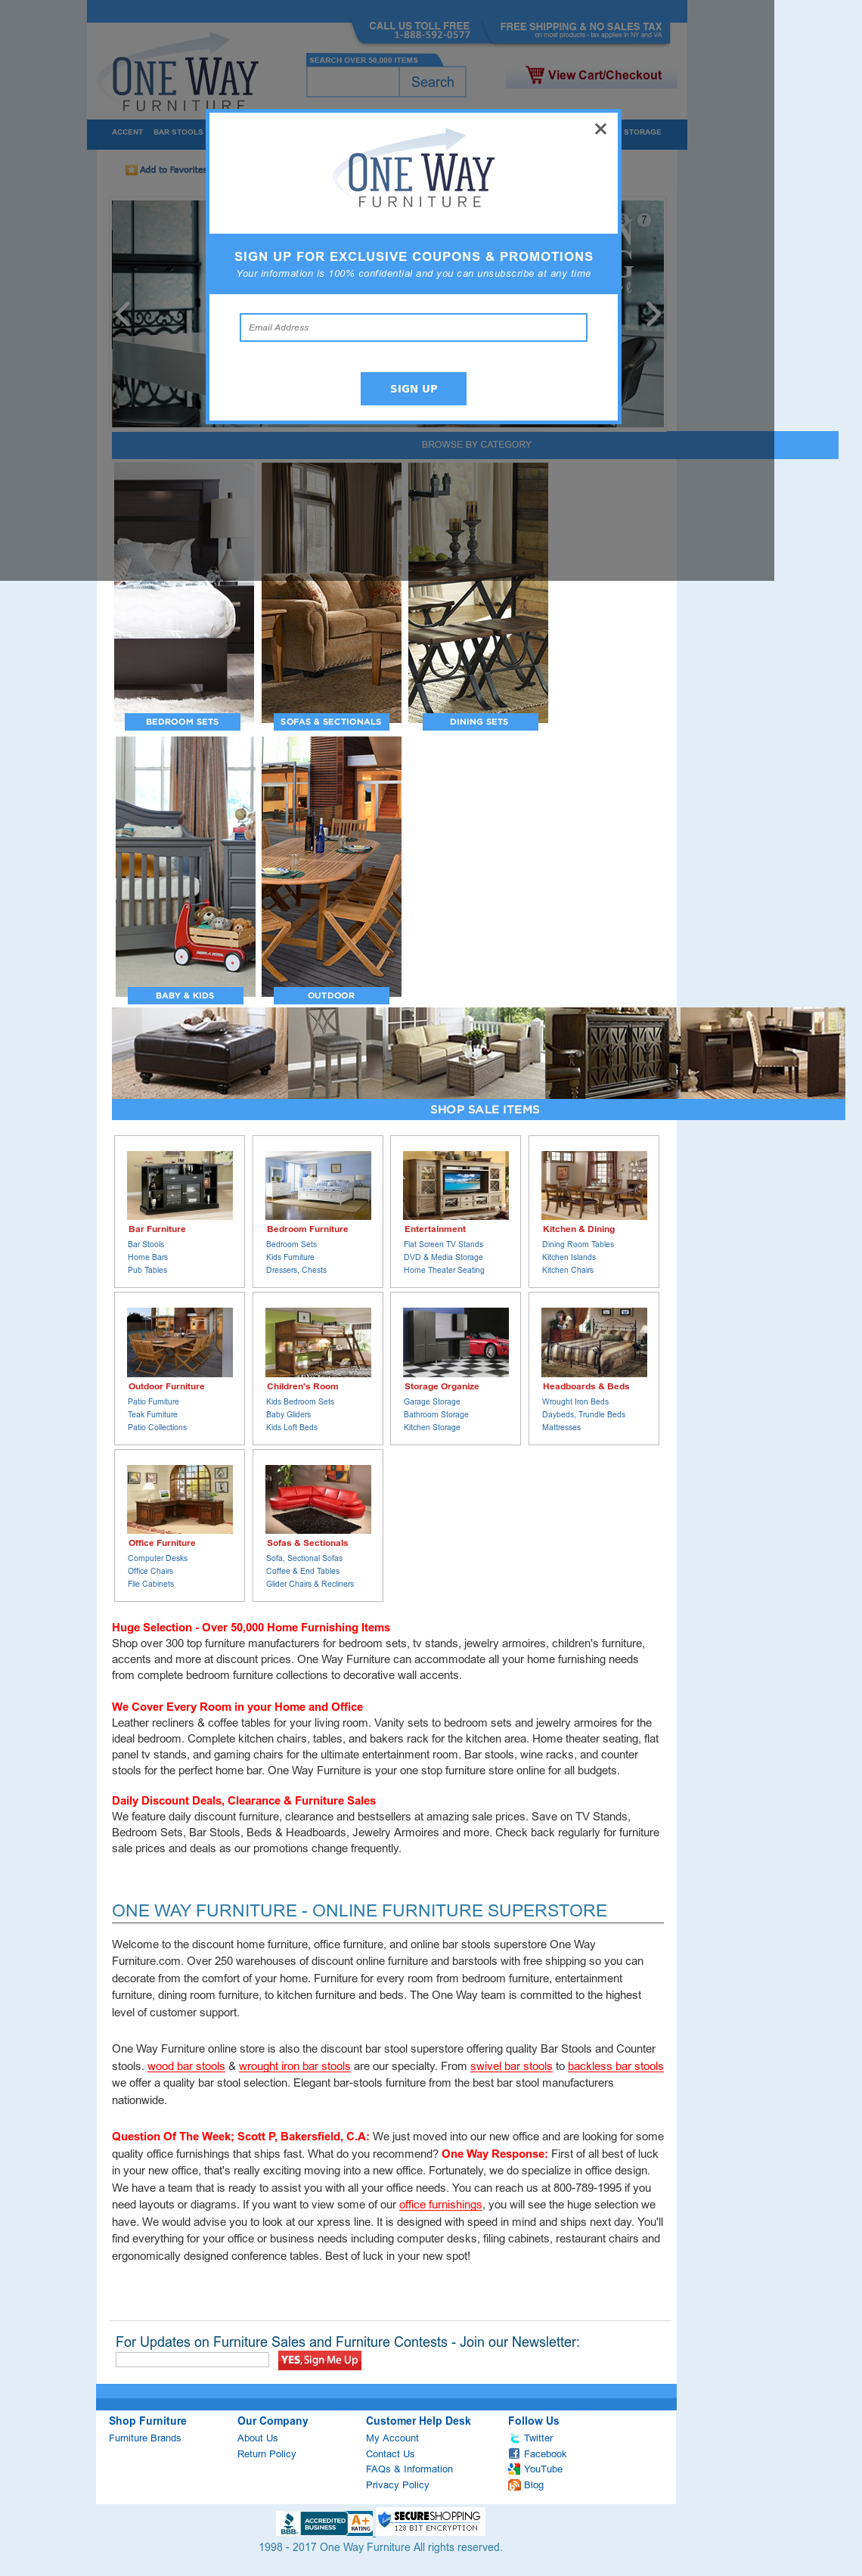 One Way Furniture Website History